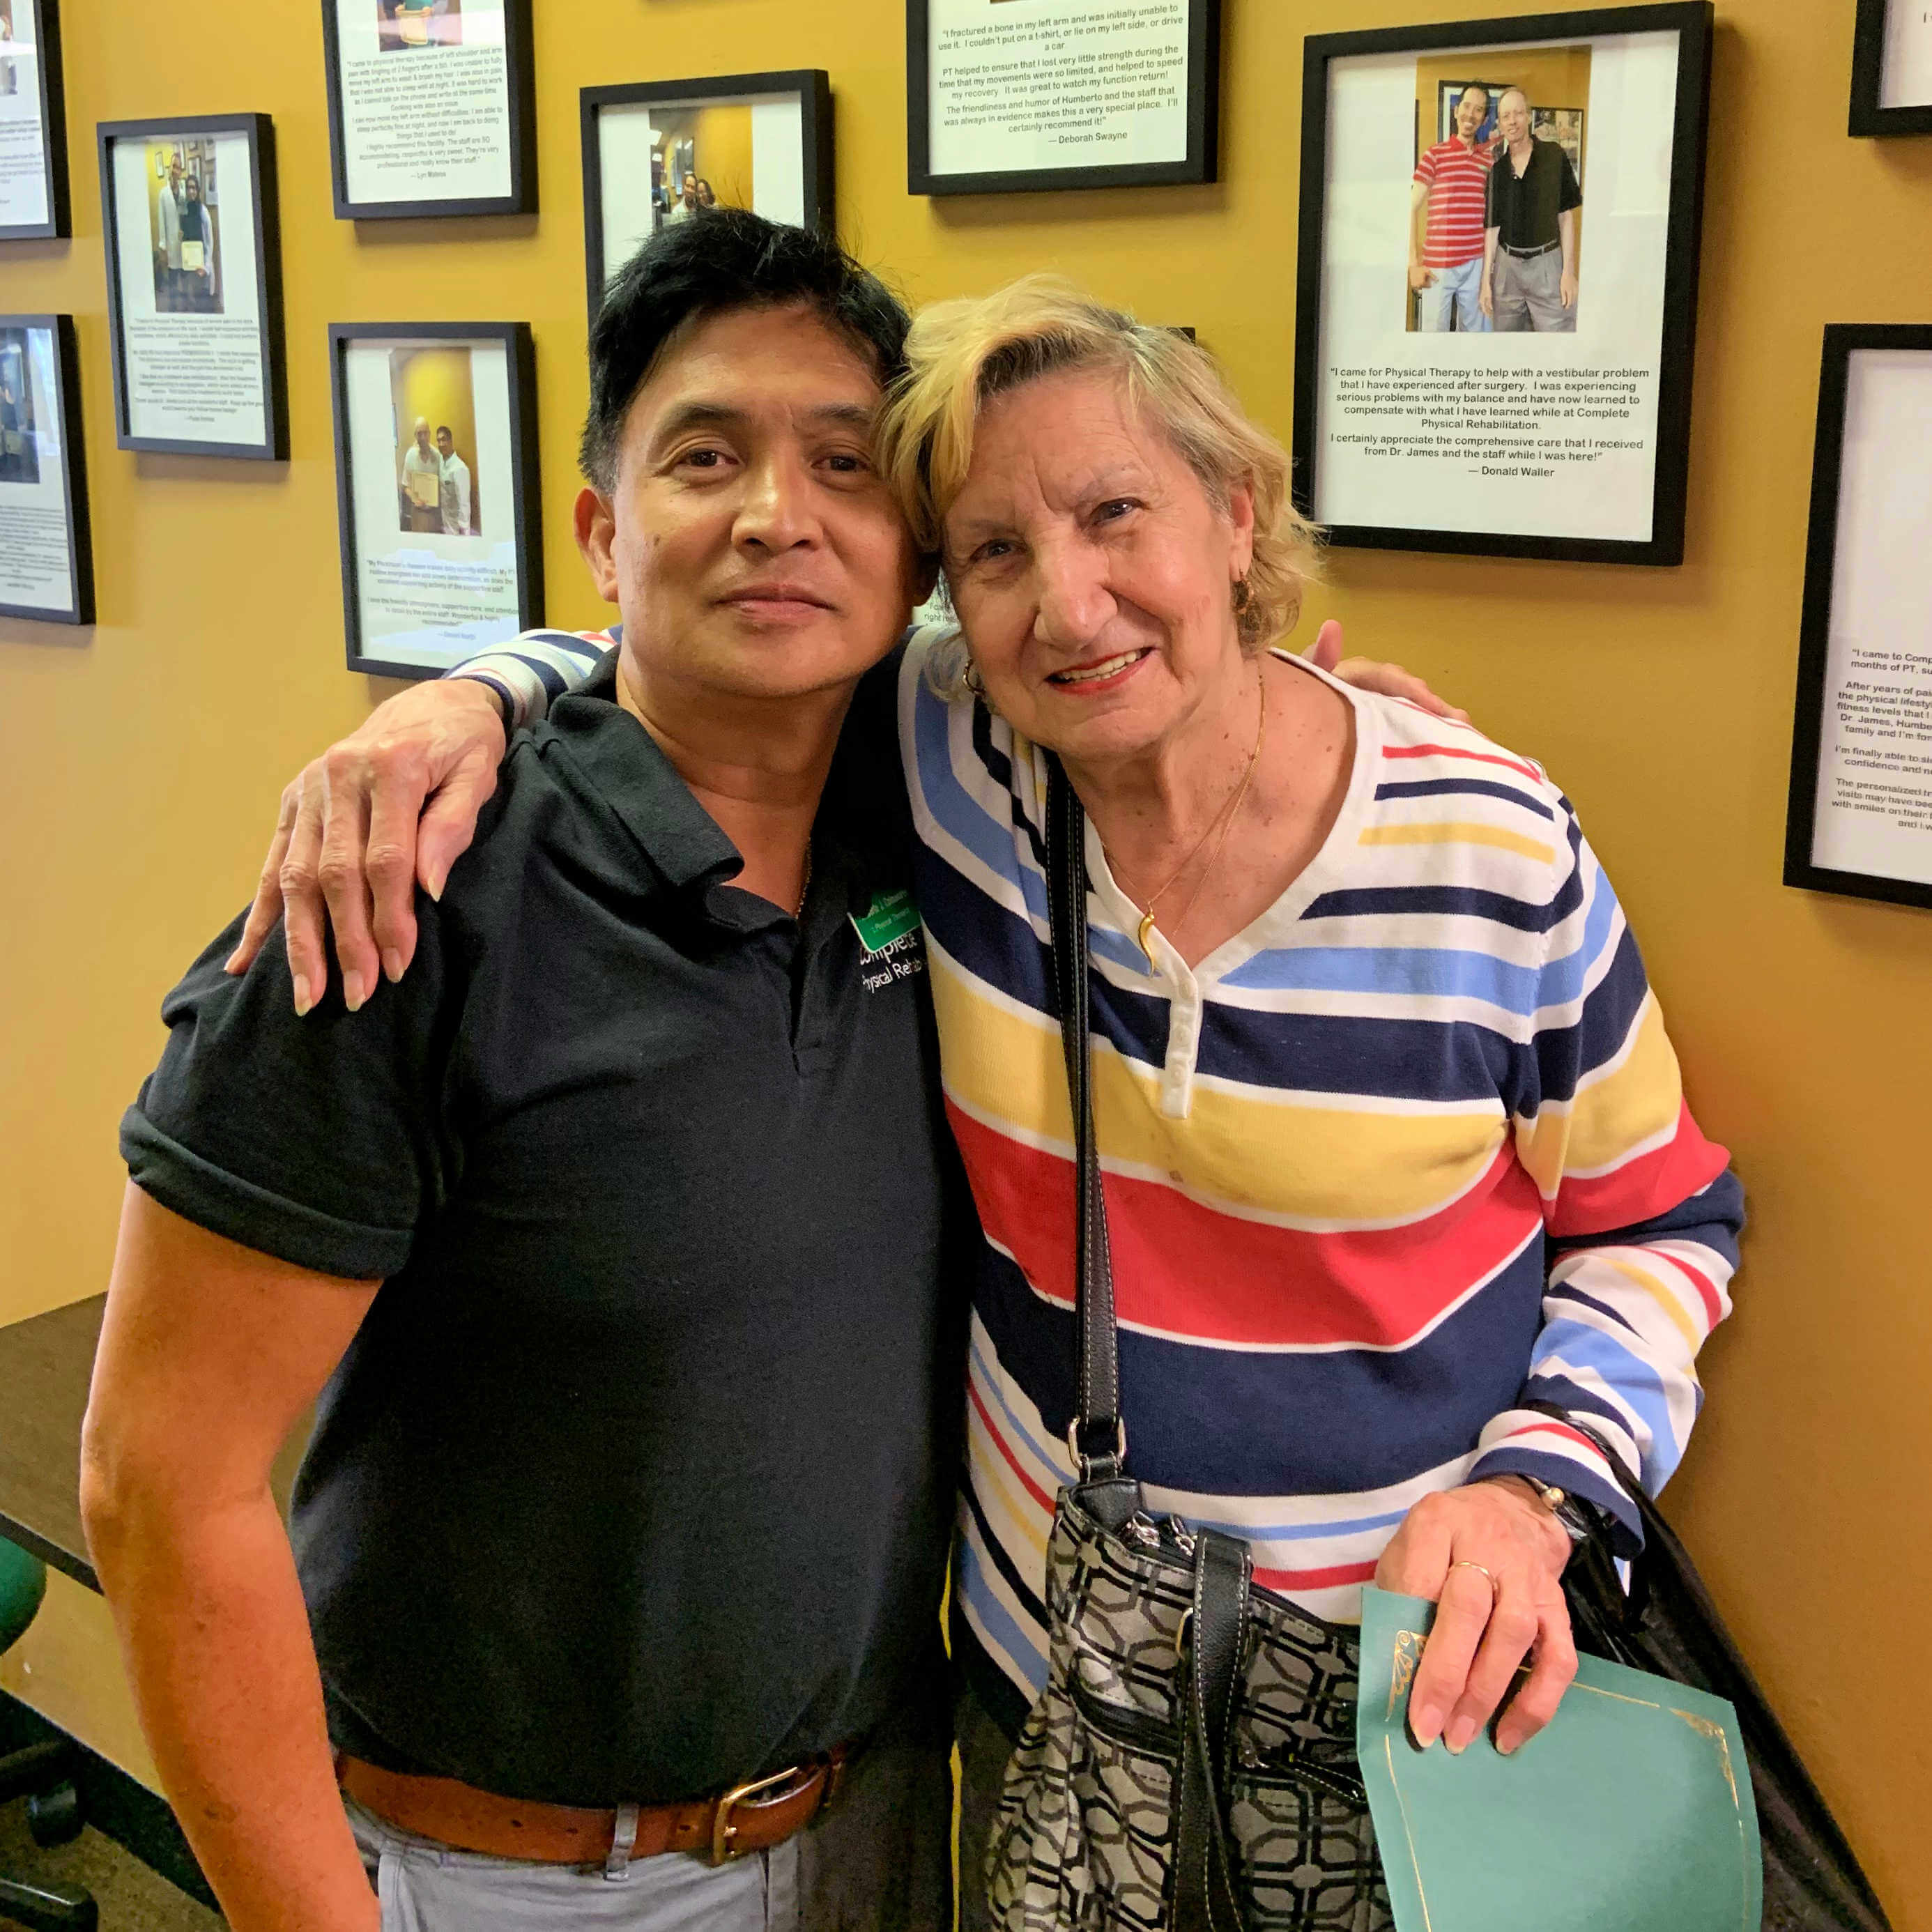 jersey city physical therapist humberto colmenares with pain patient louisa